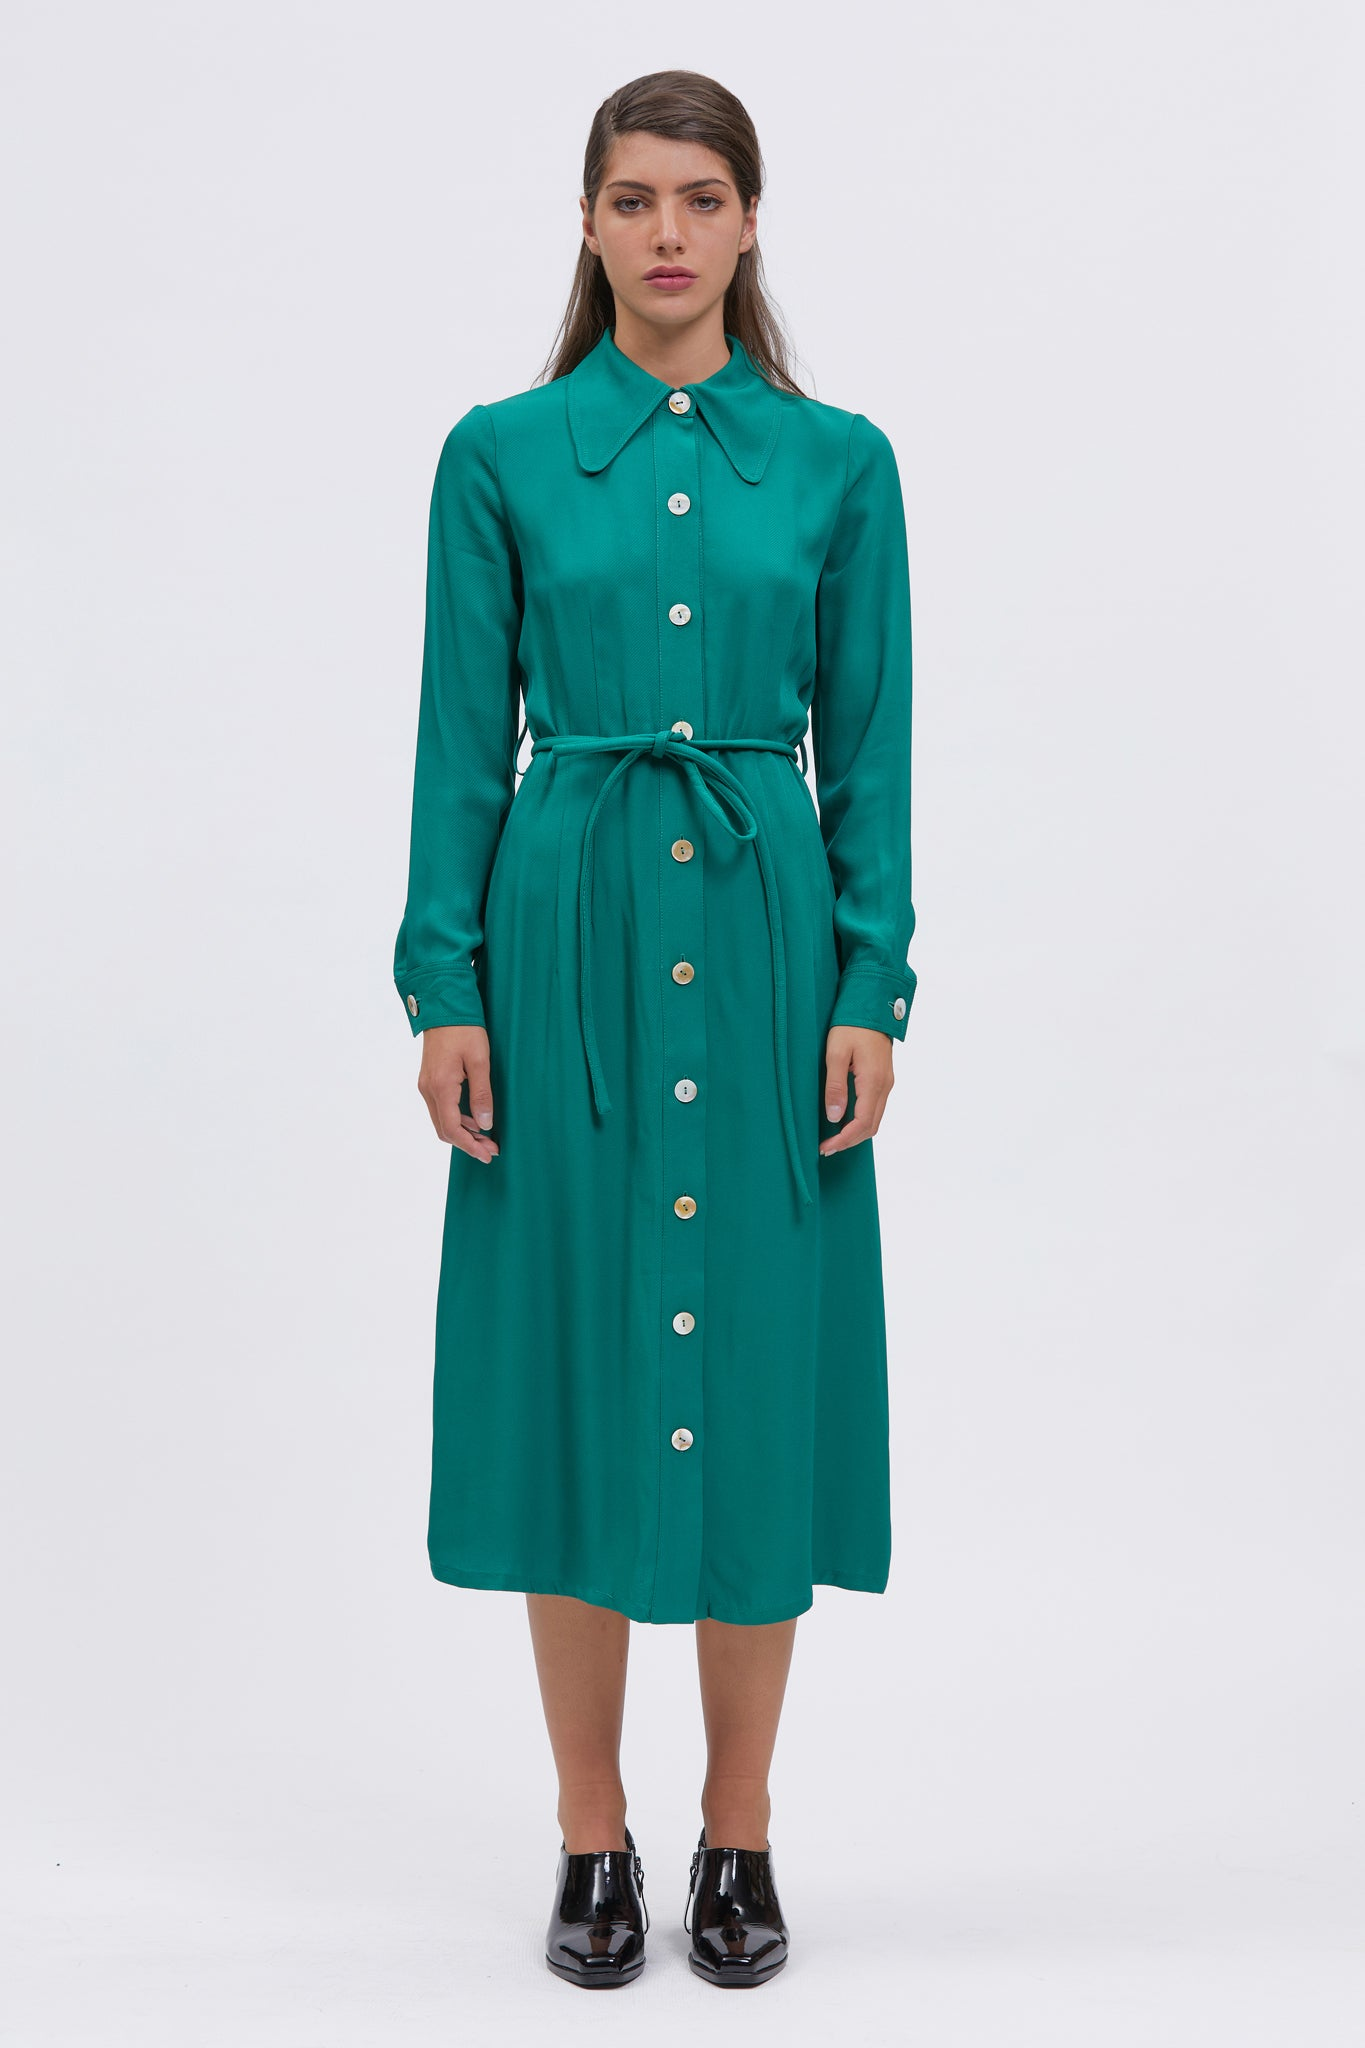 lutra dress green